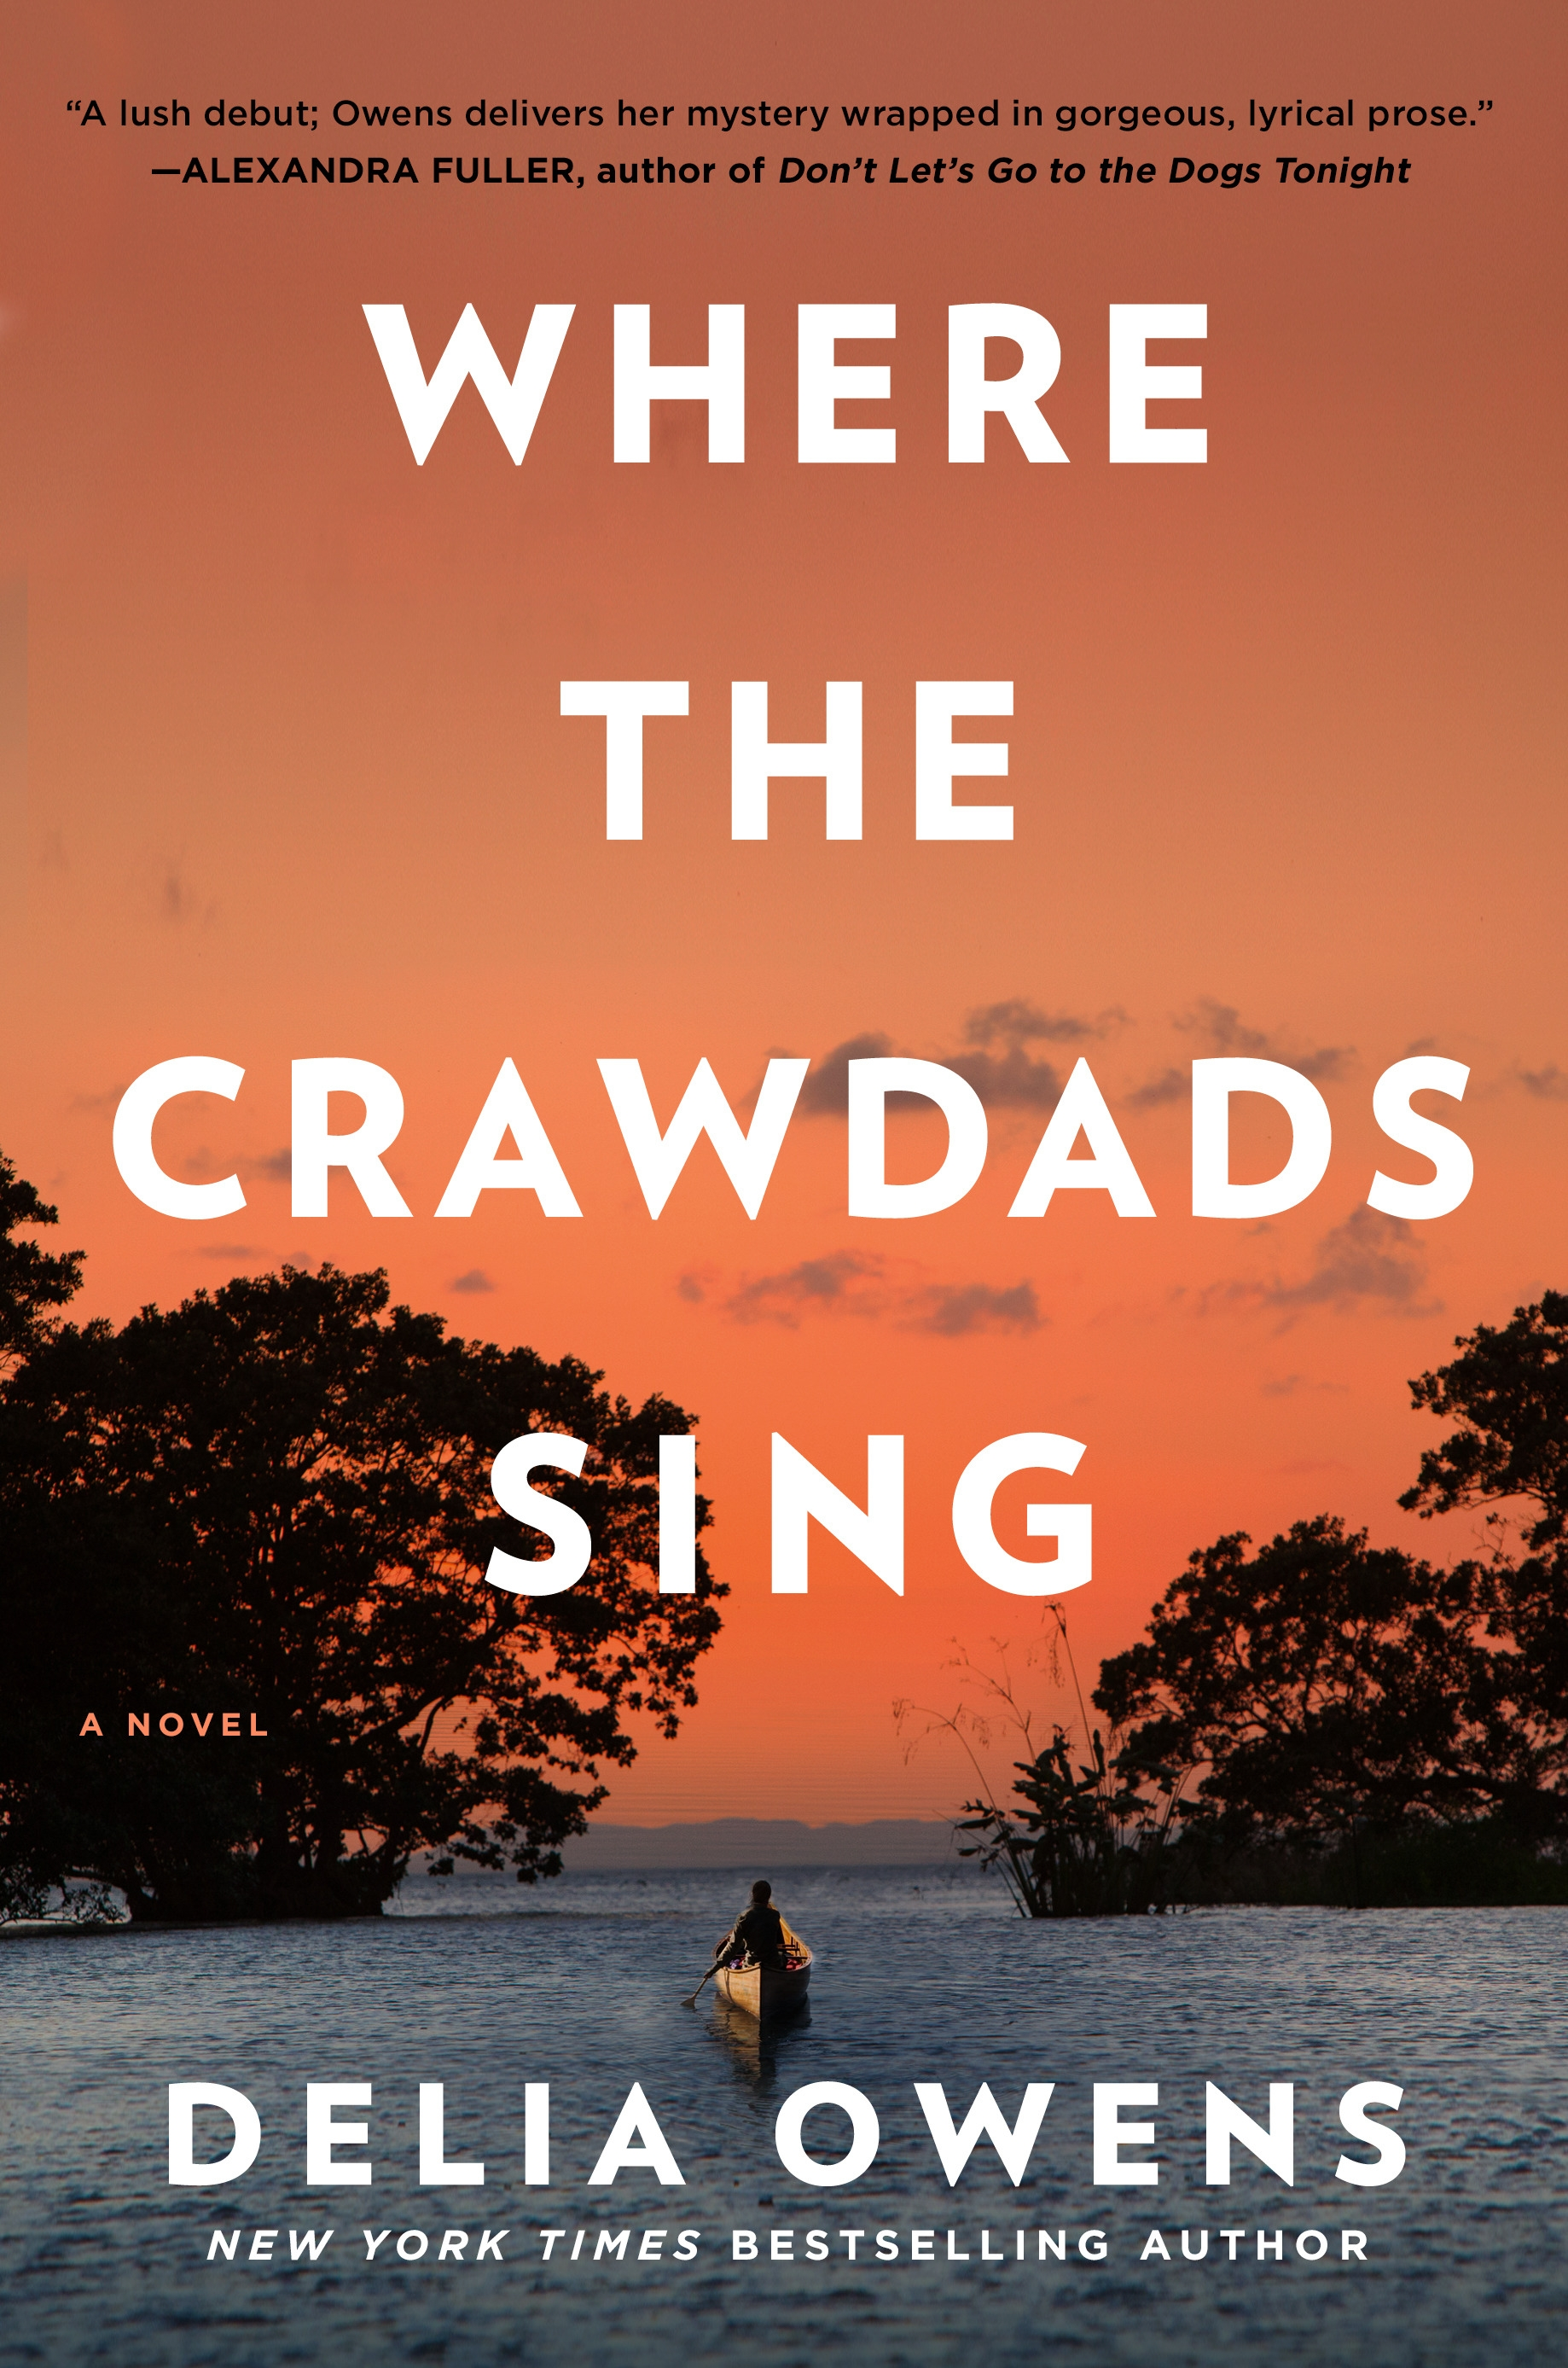 Where-the-crawdads-sing (1)